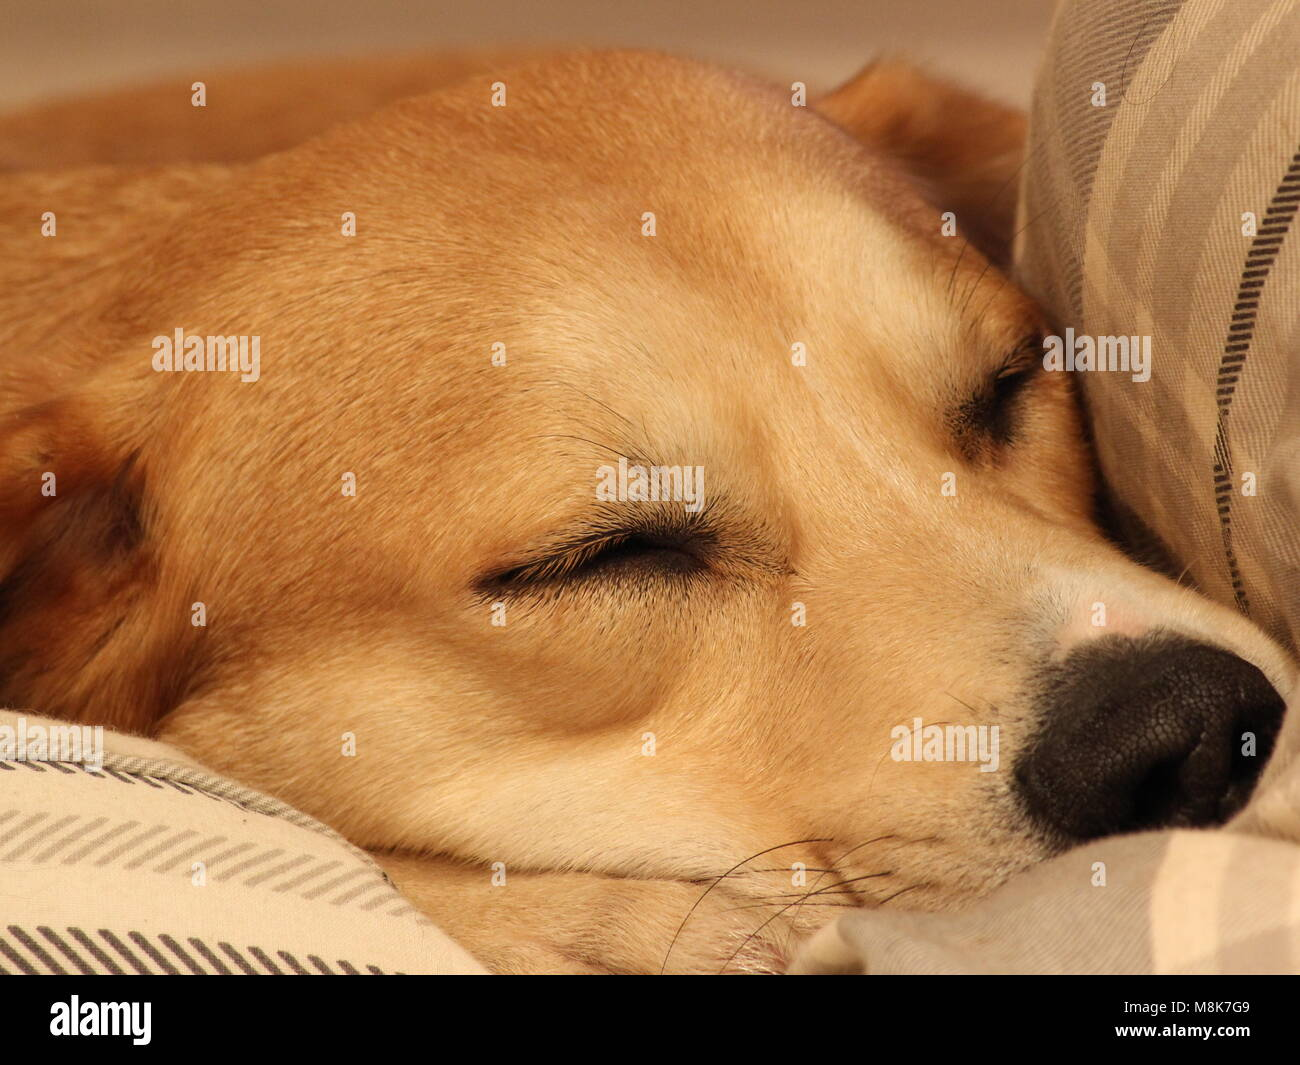 Golden labrador cross breed, BoJo sleeping after playing in the snow. - Stock Image